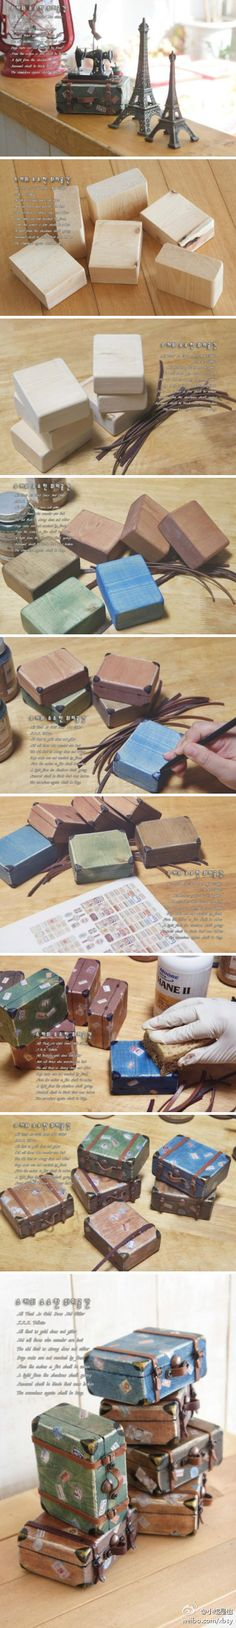 Make your own MINI luggage!!!  (Tried to translate, but each picture is still in Chinese).  Pictures are enough to know how to make.  Now where to get those cute little stickers?!?!?!